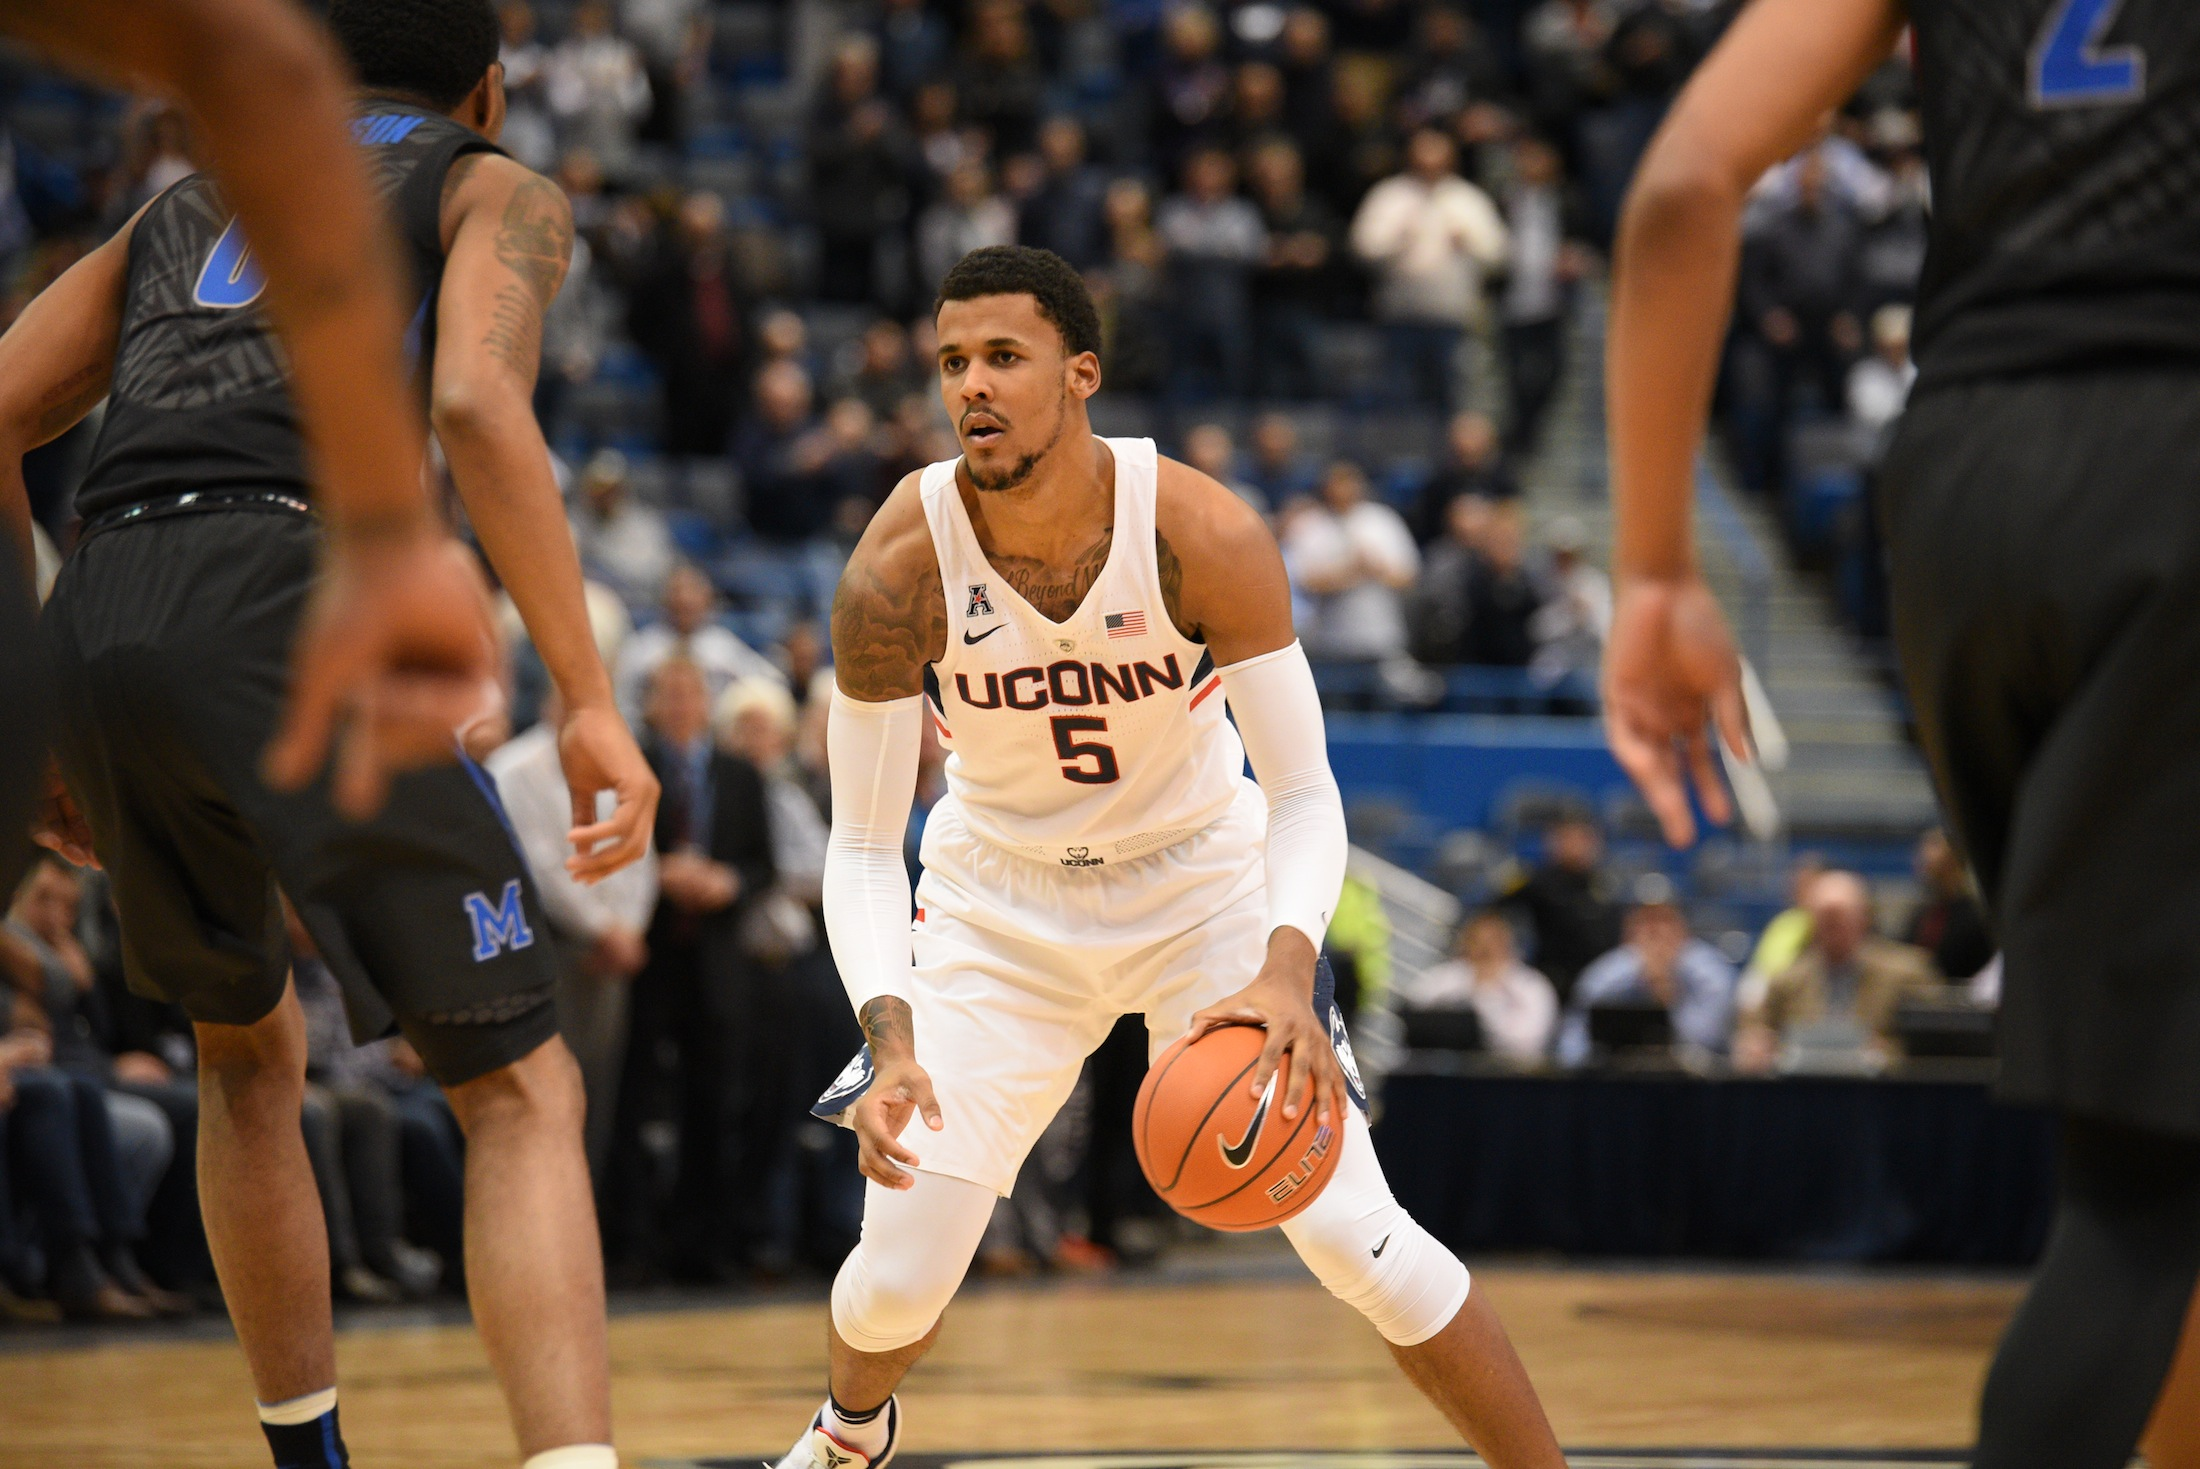 UConn freshman Vance Jackson looks to pass against Memphis on February 16th at the XL Center in Hartford. (Zhelun Lang/The Daily Campus)